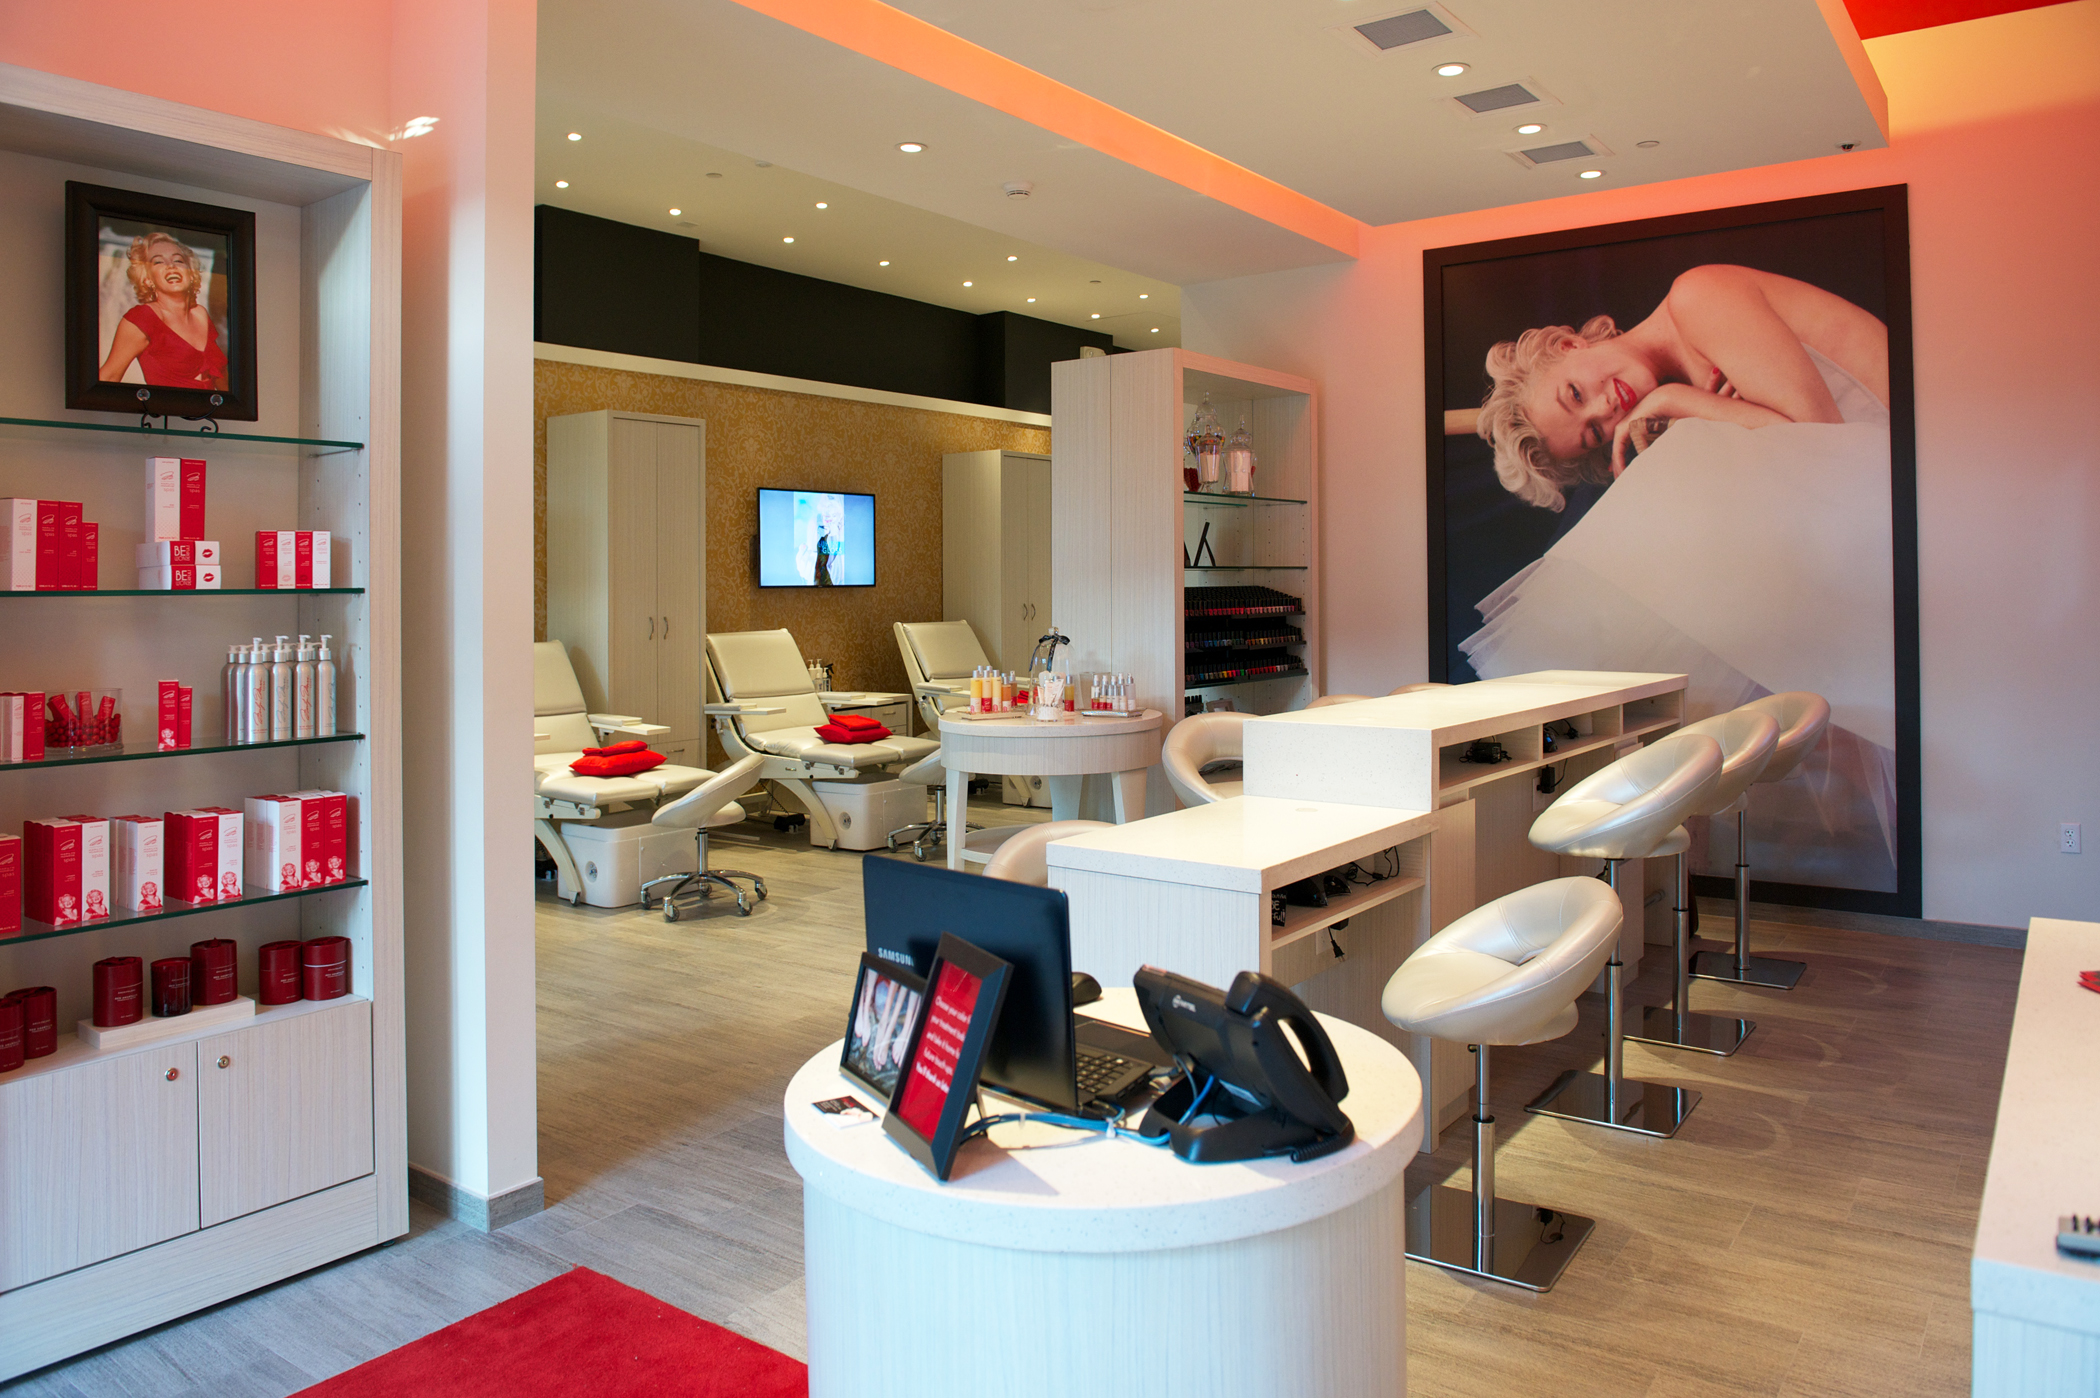 Midtown 39 s new marilyn monroe nail boutique offers for 24 nail salon nyc